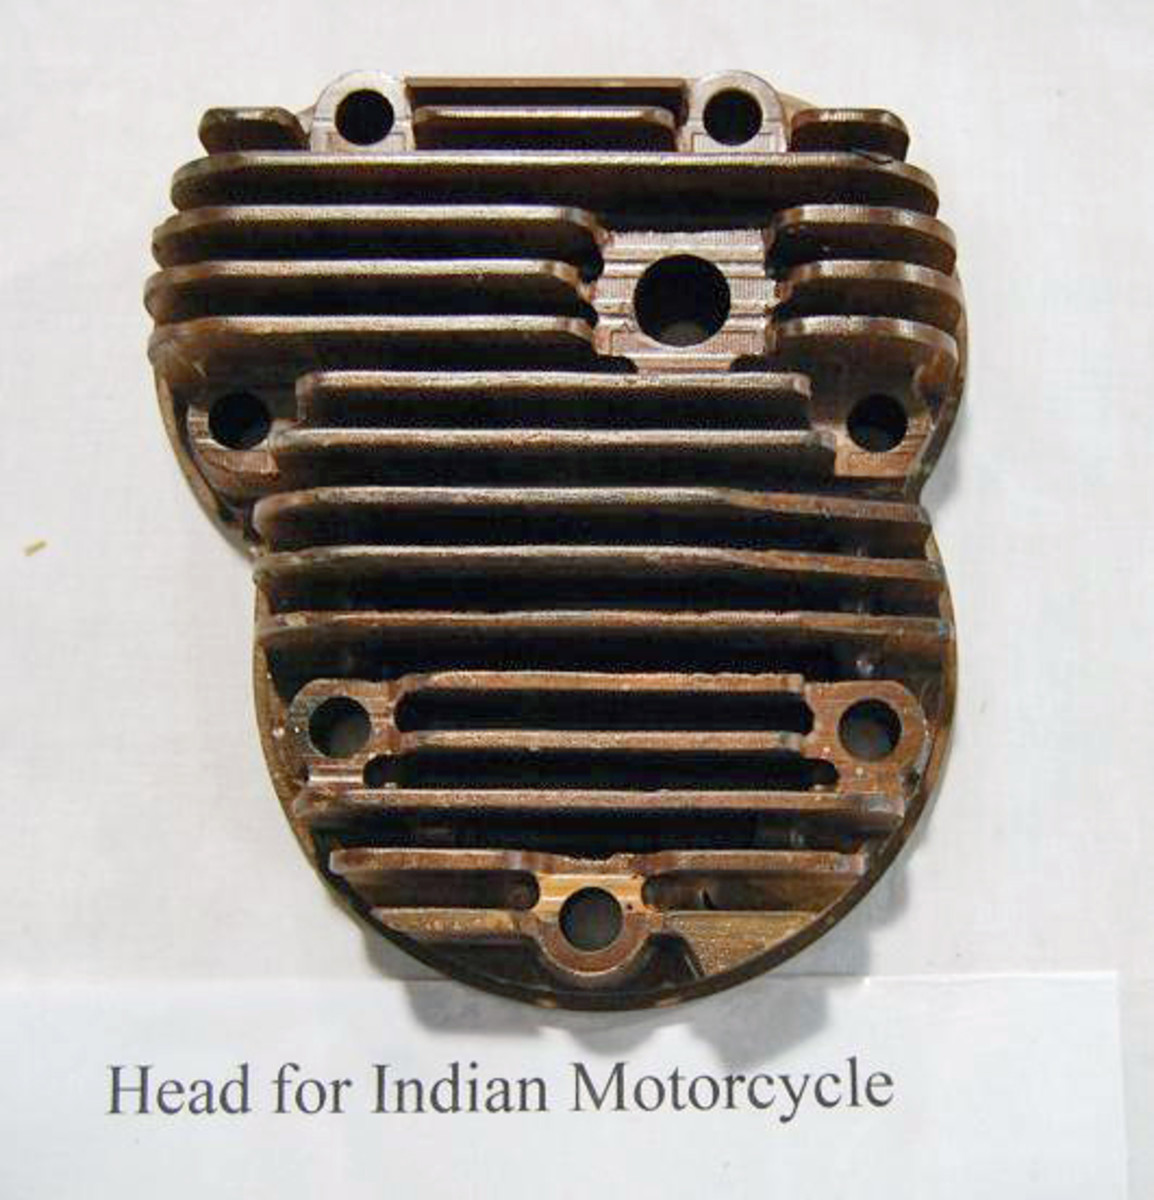 This is a wooden pattern for a vintage motorcycle cylinder head.